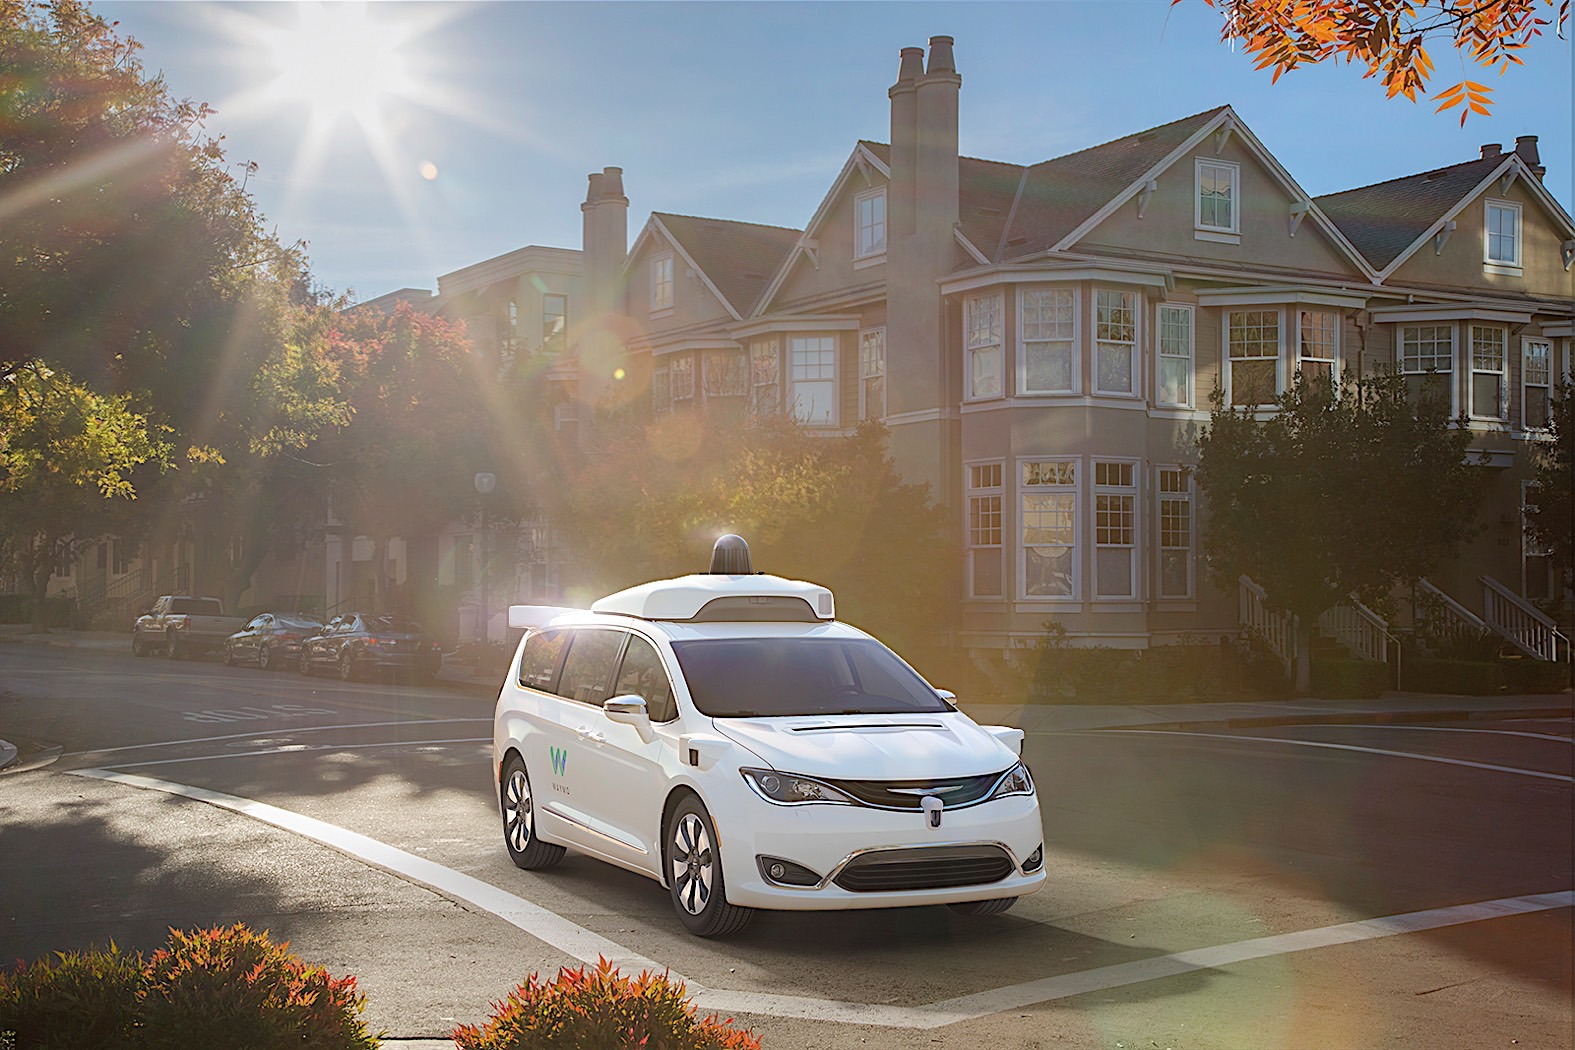 Waymo buys thousands of self-driving minivans